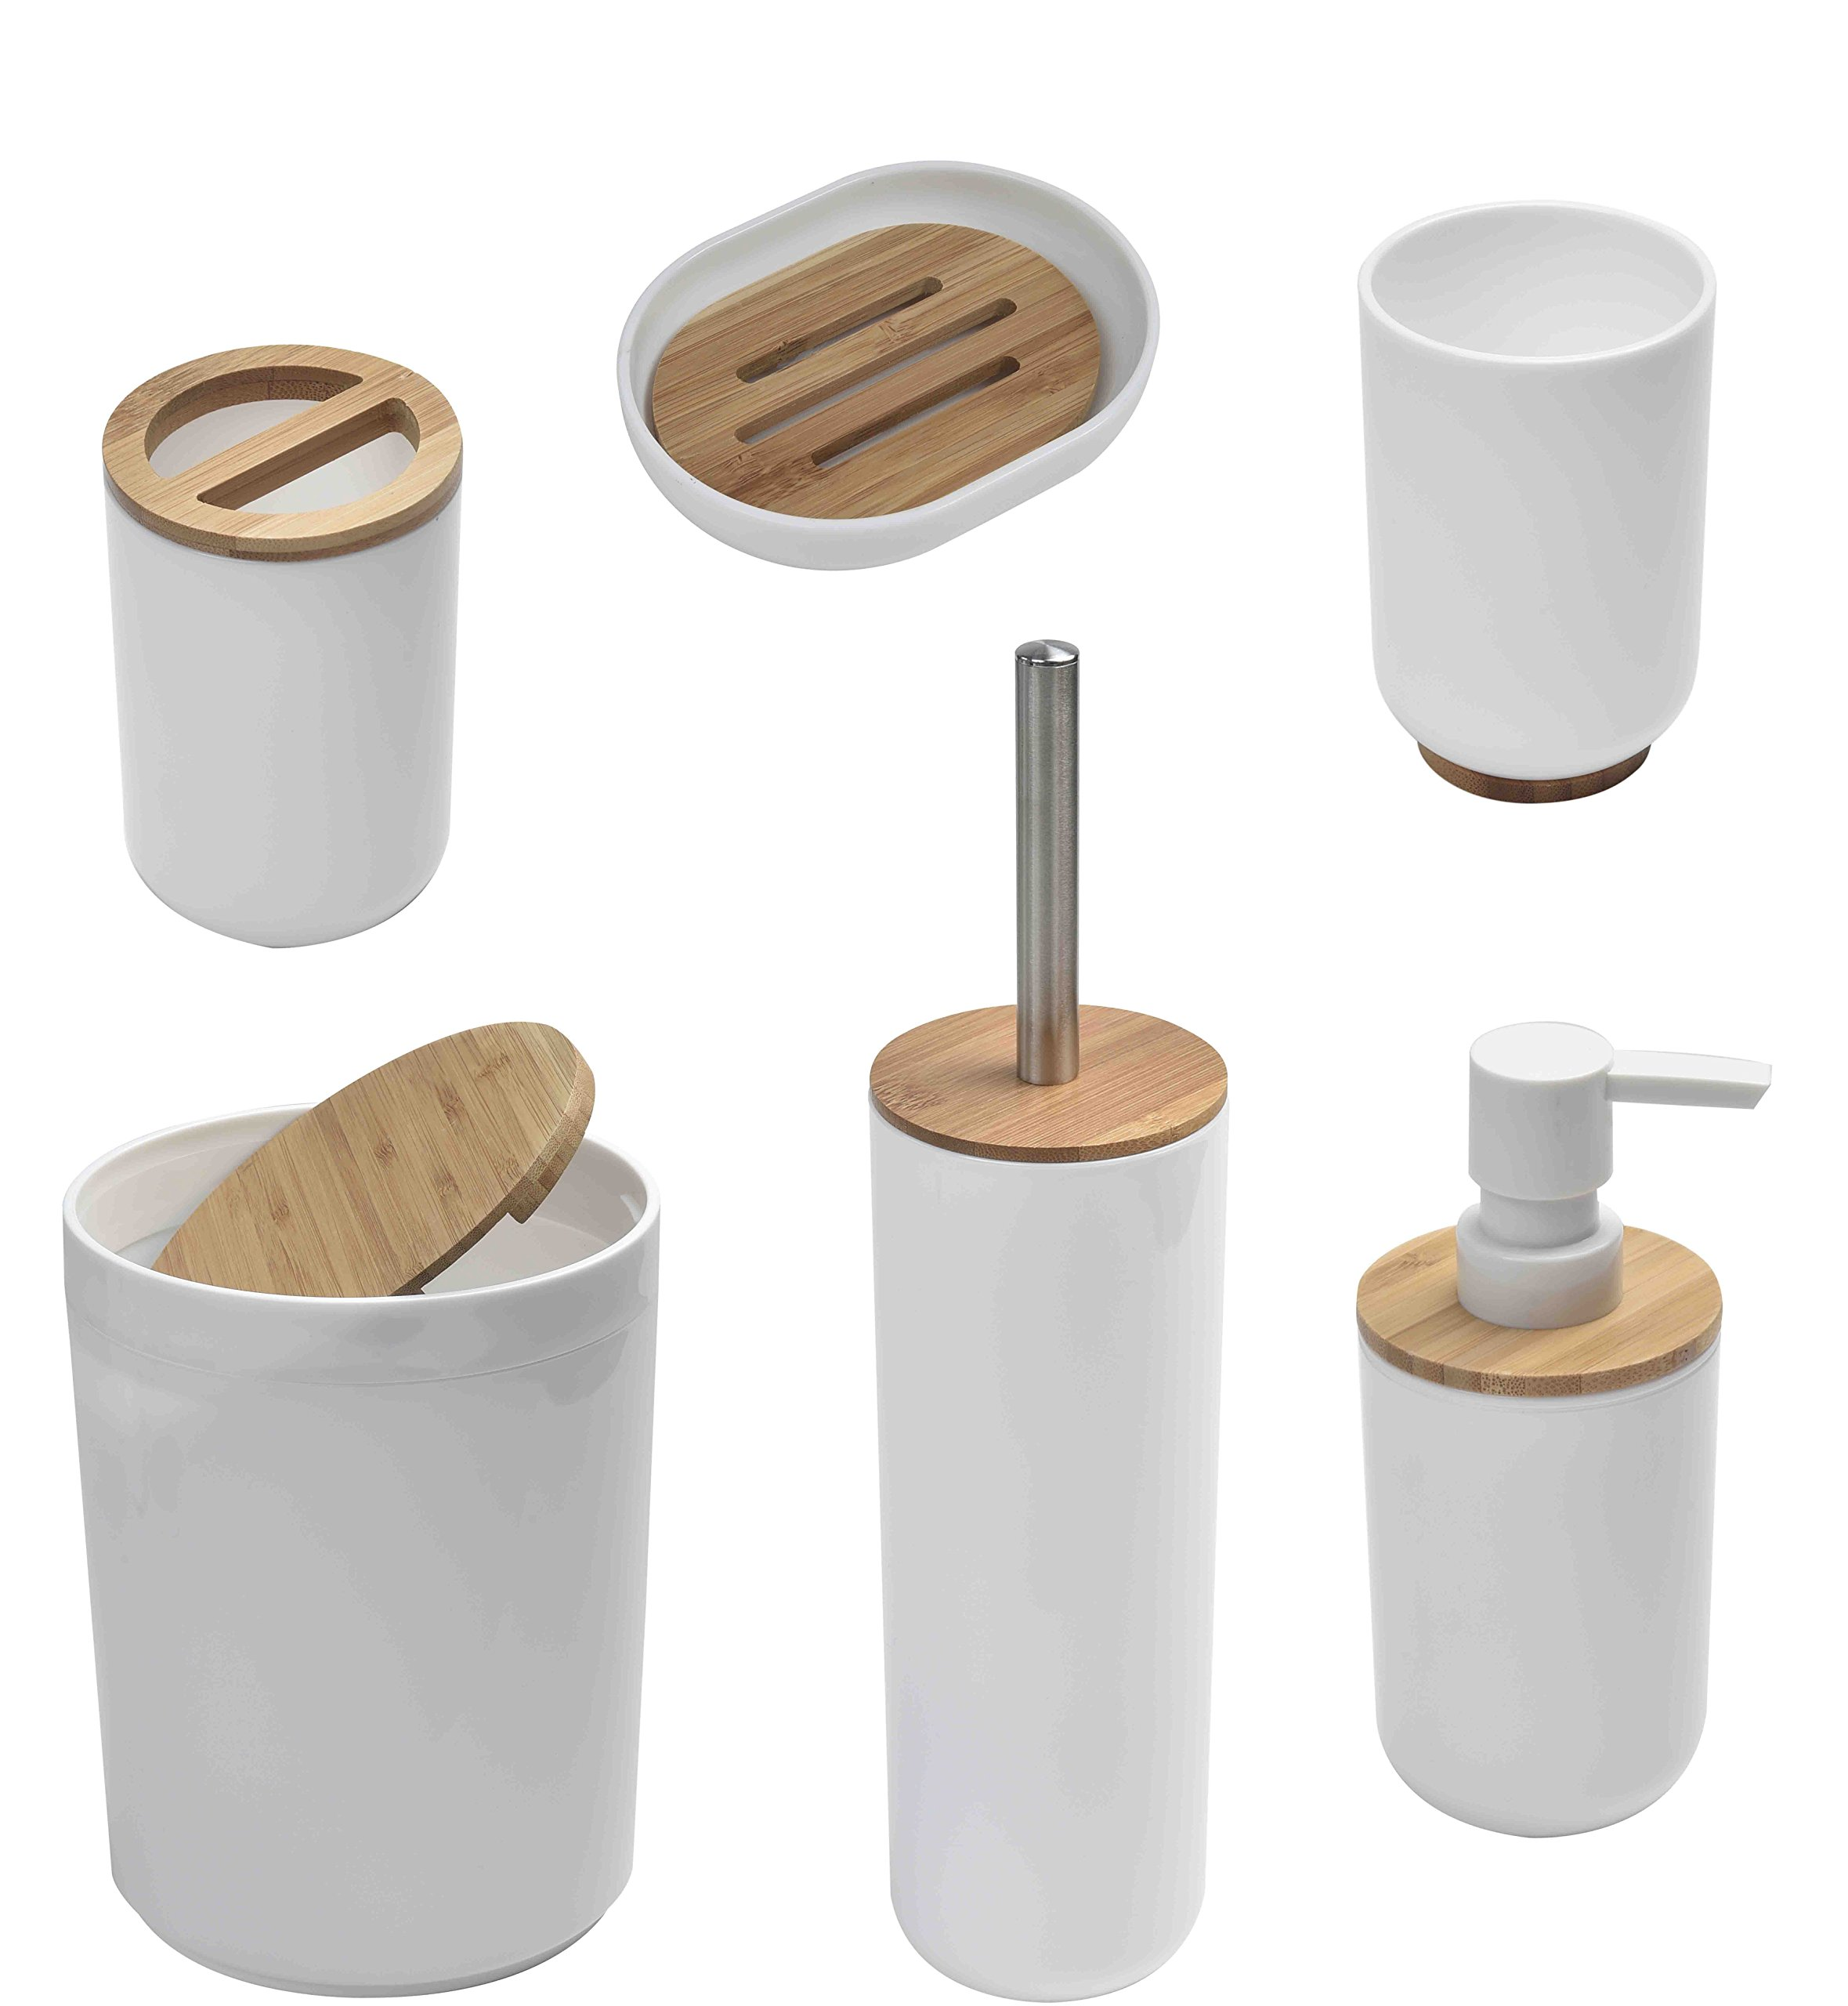 EVIDECO Round Bathroom Floor Trash Can Padang, White/Brown by EVIDECO (Image #7)